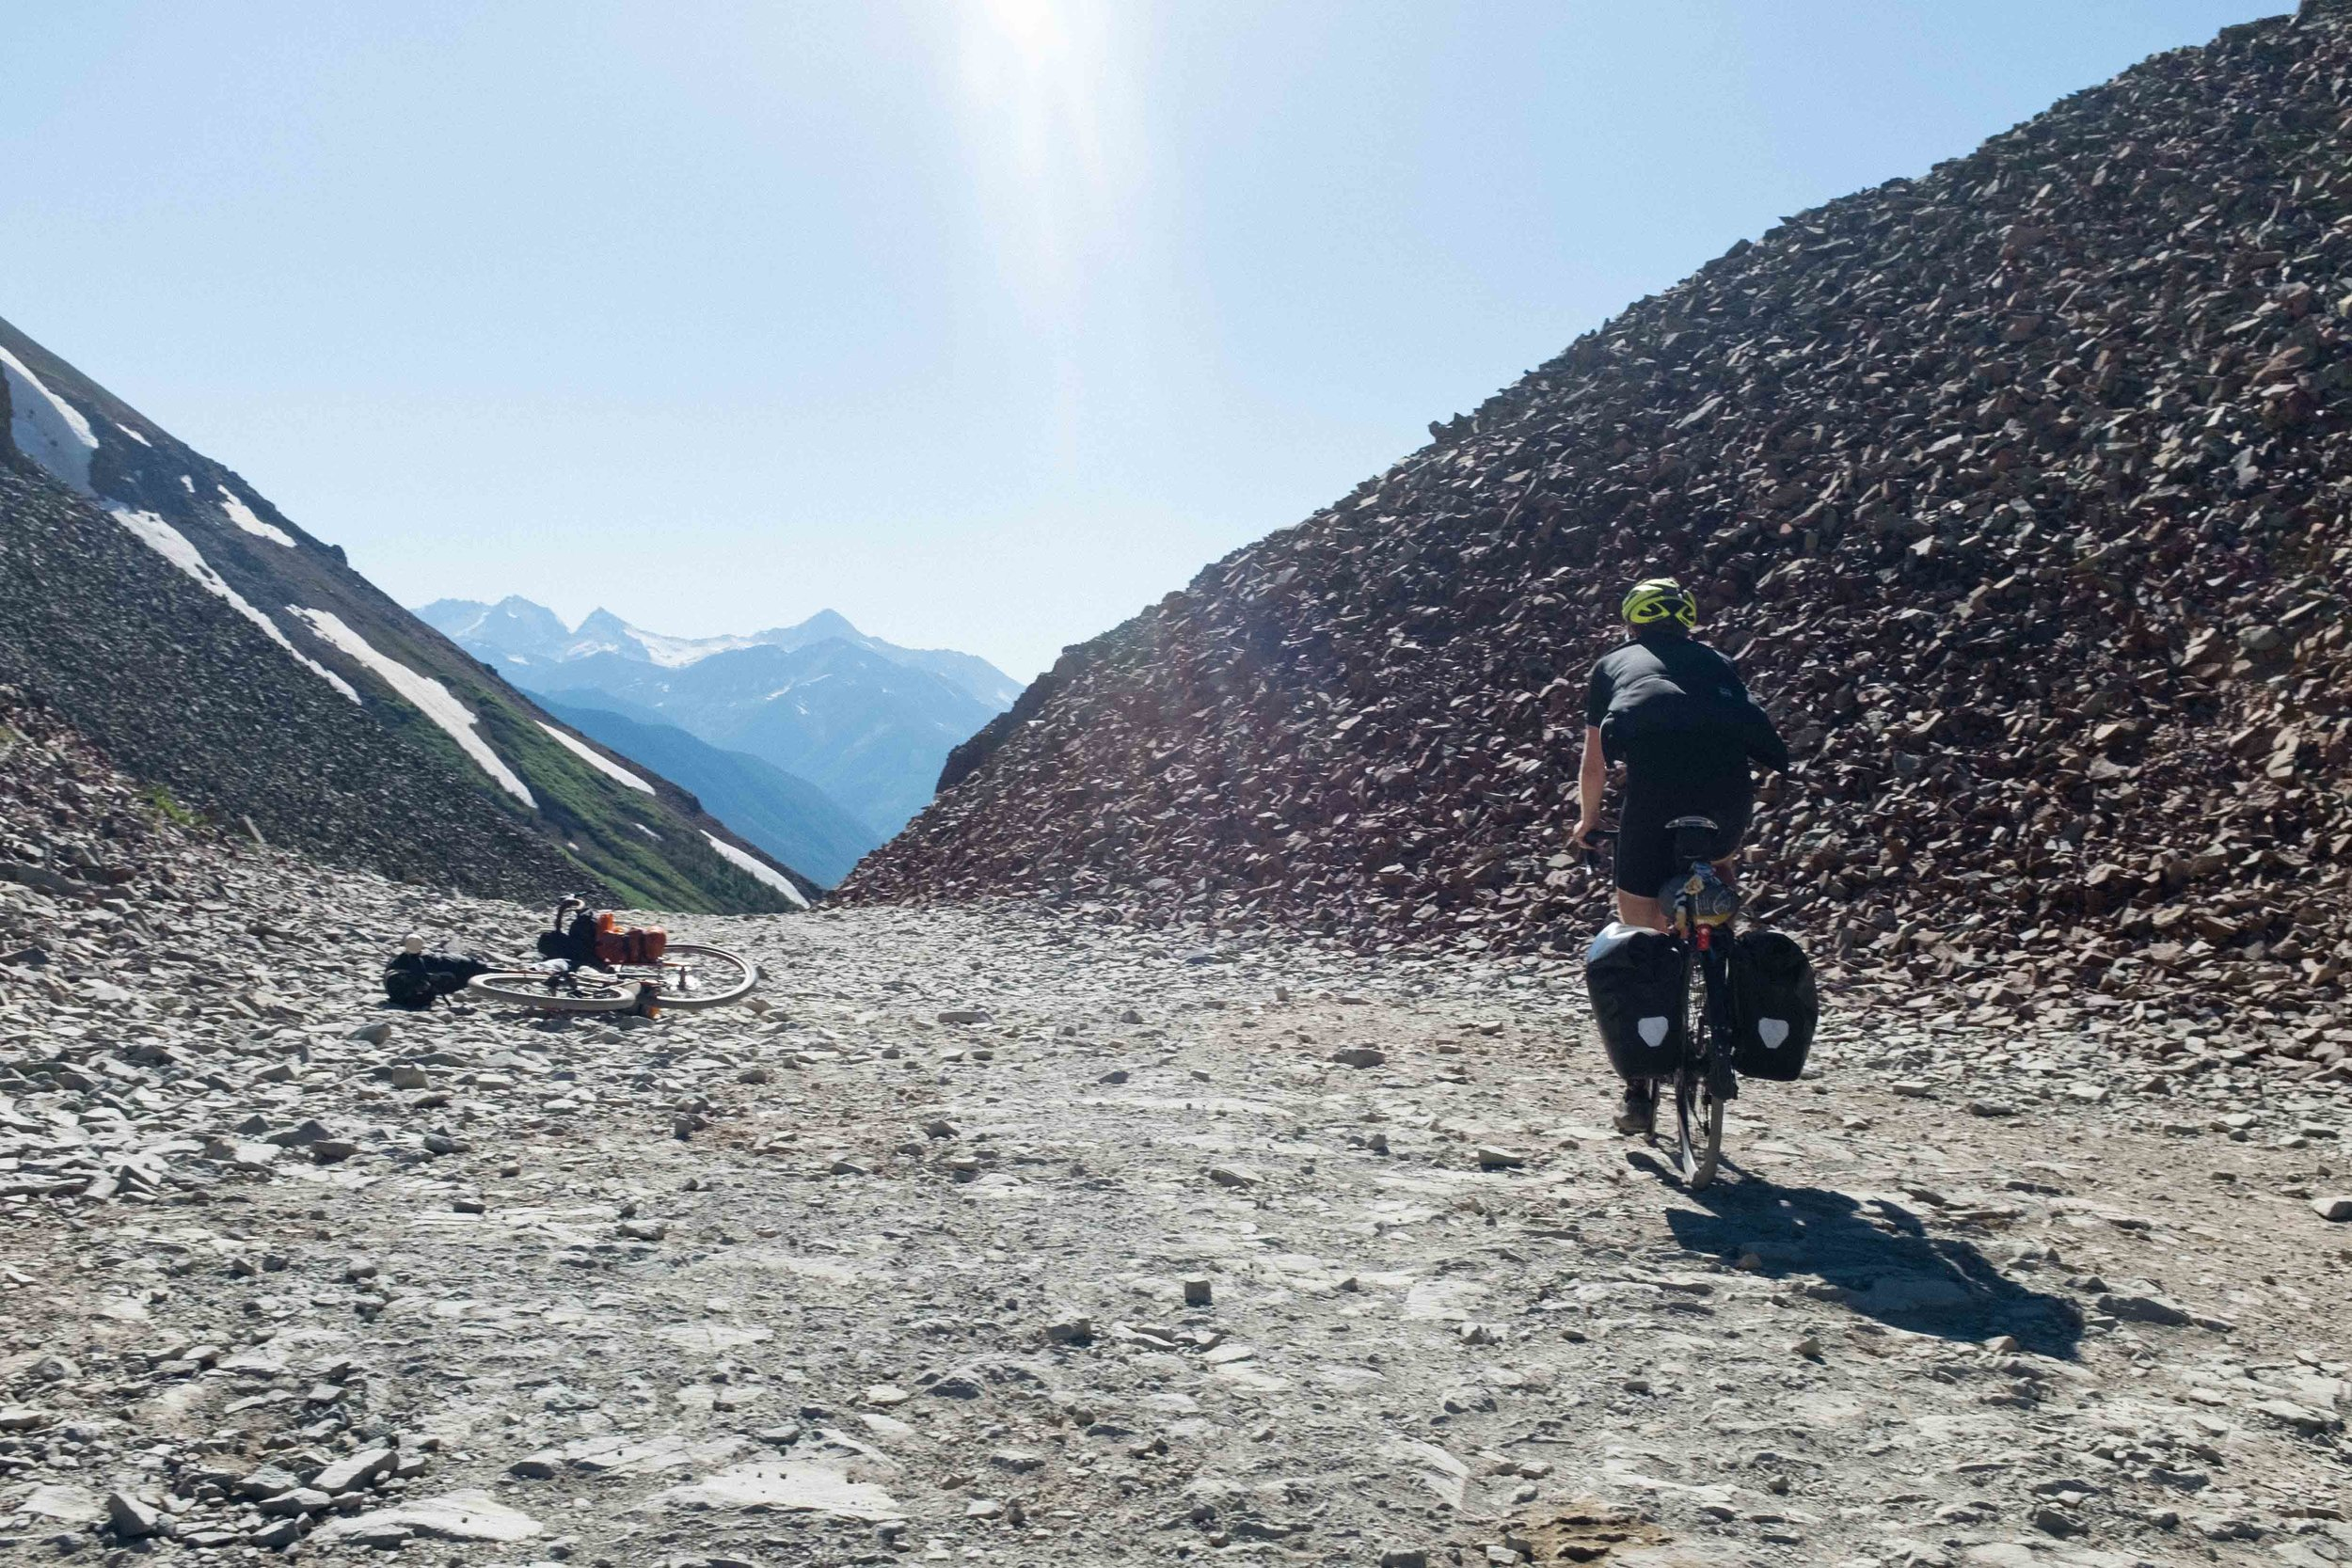 Ben summiting Ophir Pass. The top .5 mile or so and 750 feet of elevation gain of the climb was ridable, so we got back on, bombed through a boulder field, and then began descending on some legitamately sketchy shale.